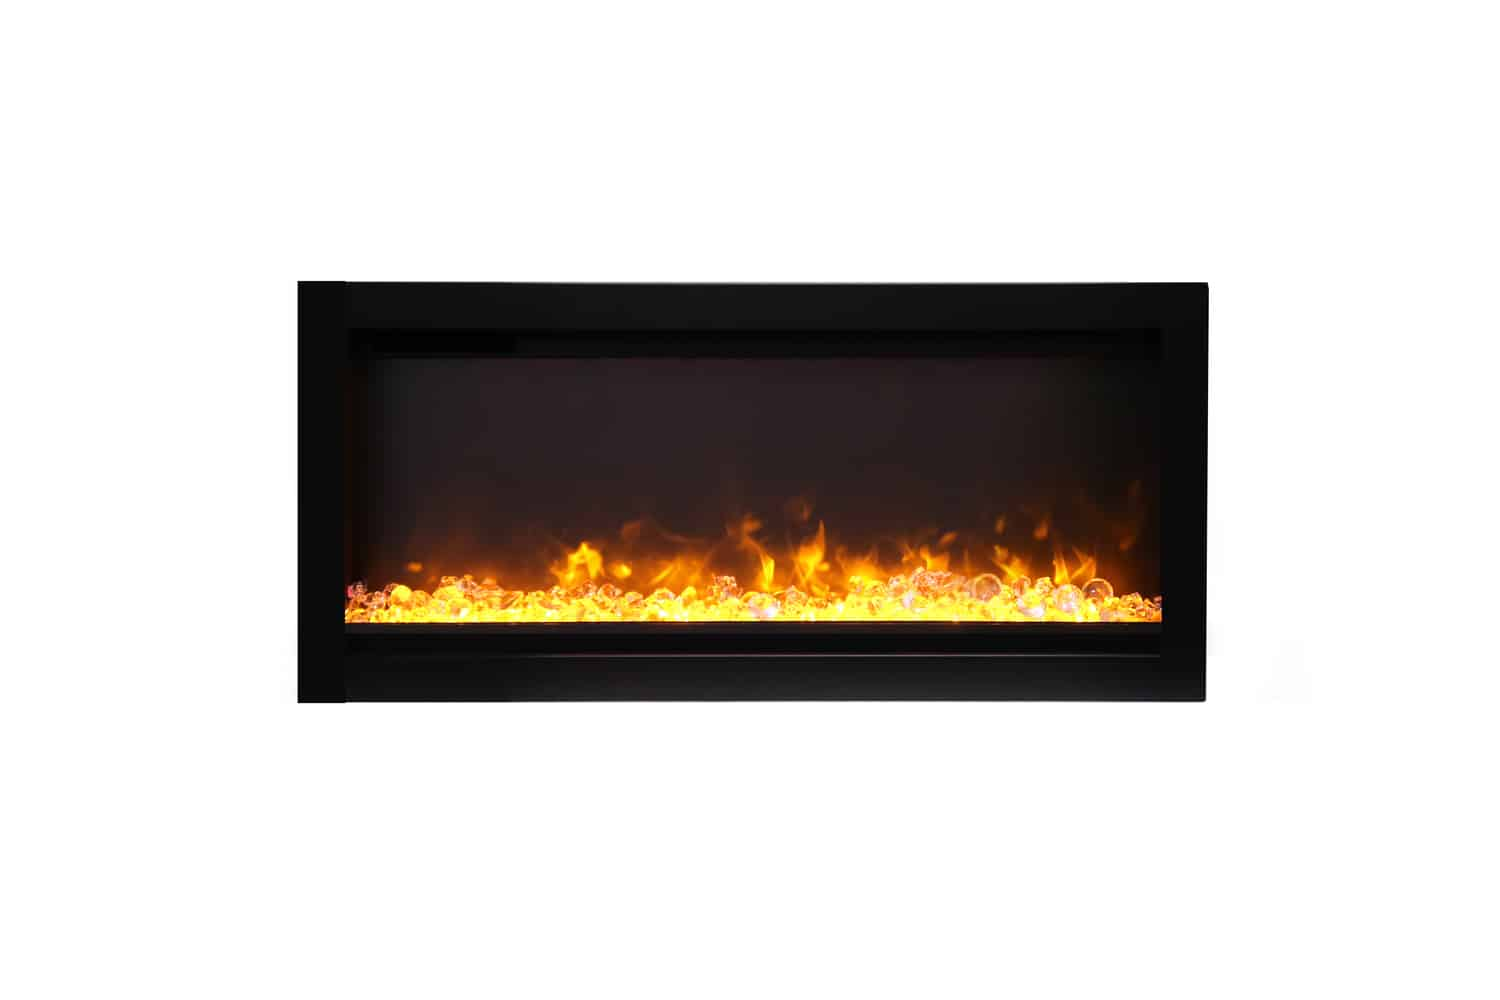 amantii sym-34-b symmetry 34″ linear built-in electric fireplace